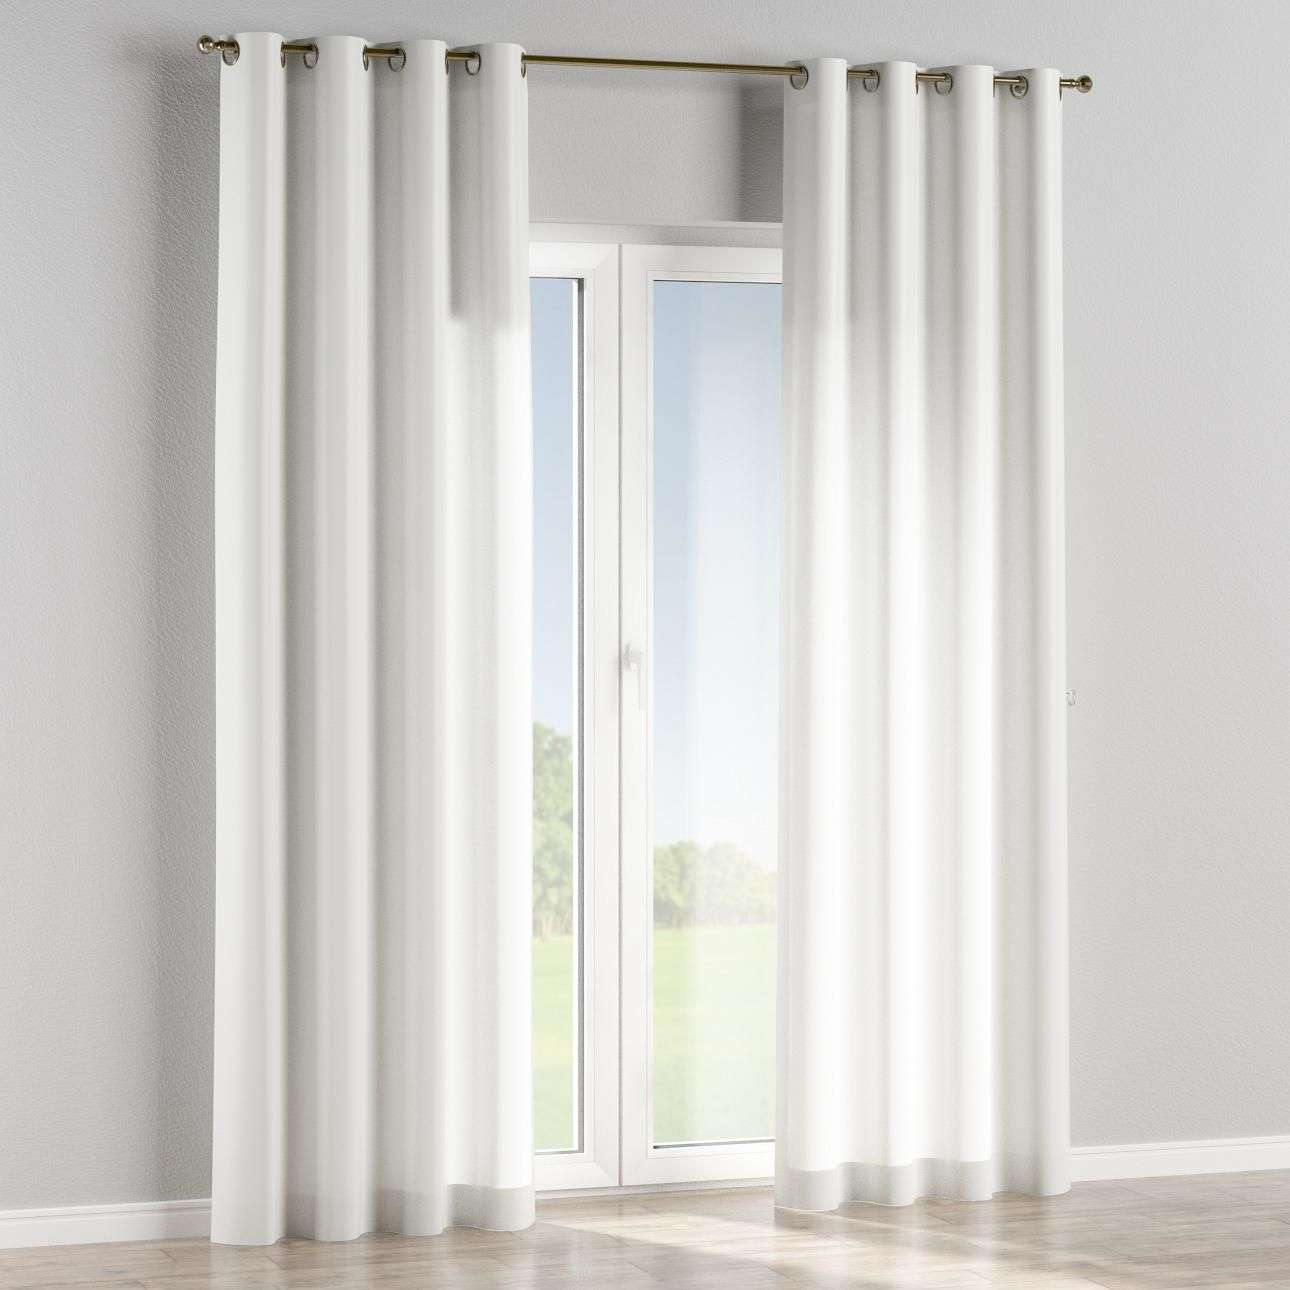 Eyelet curtains in collection Rustica, fabric: 138-13